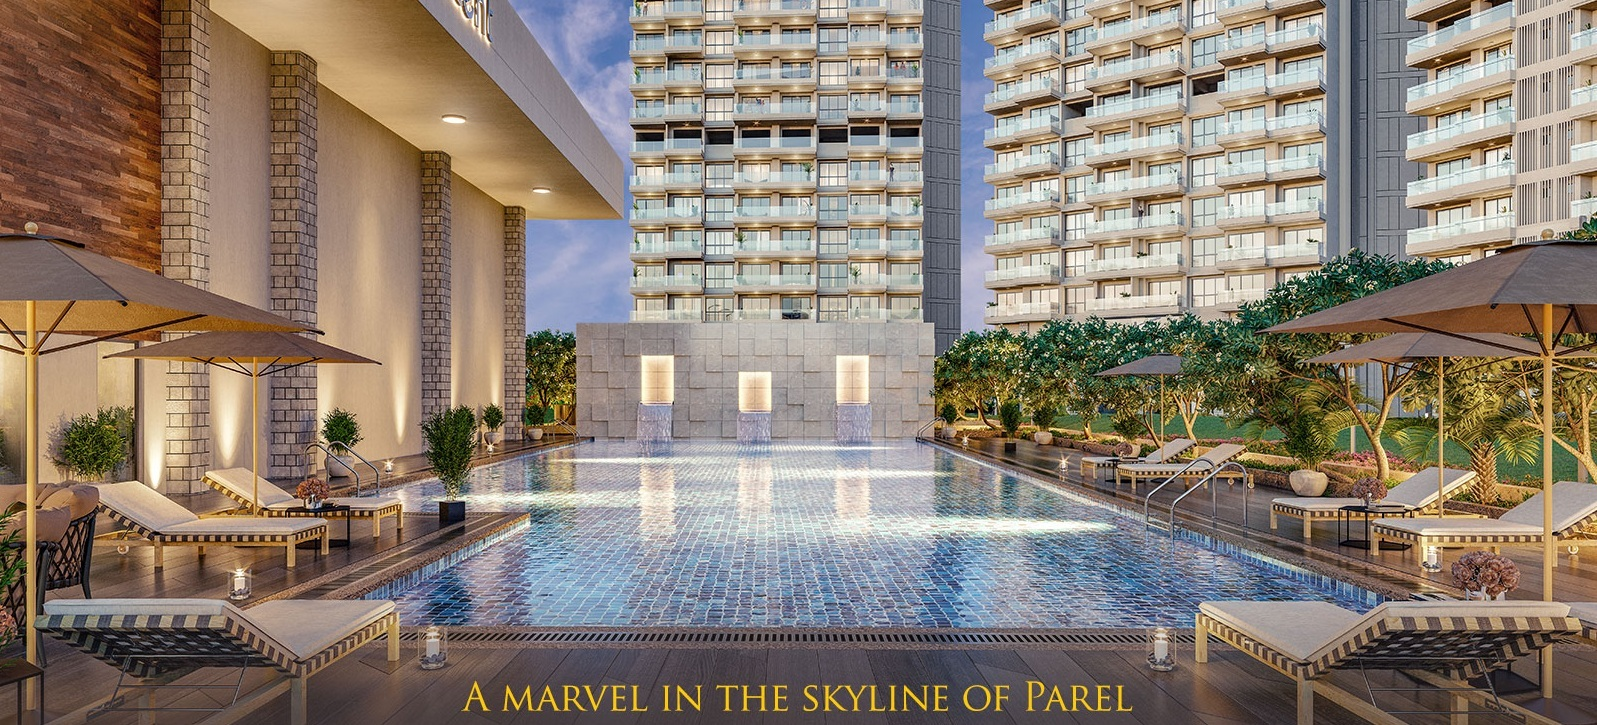 l&t crescent bay t5 project amenities features1